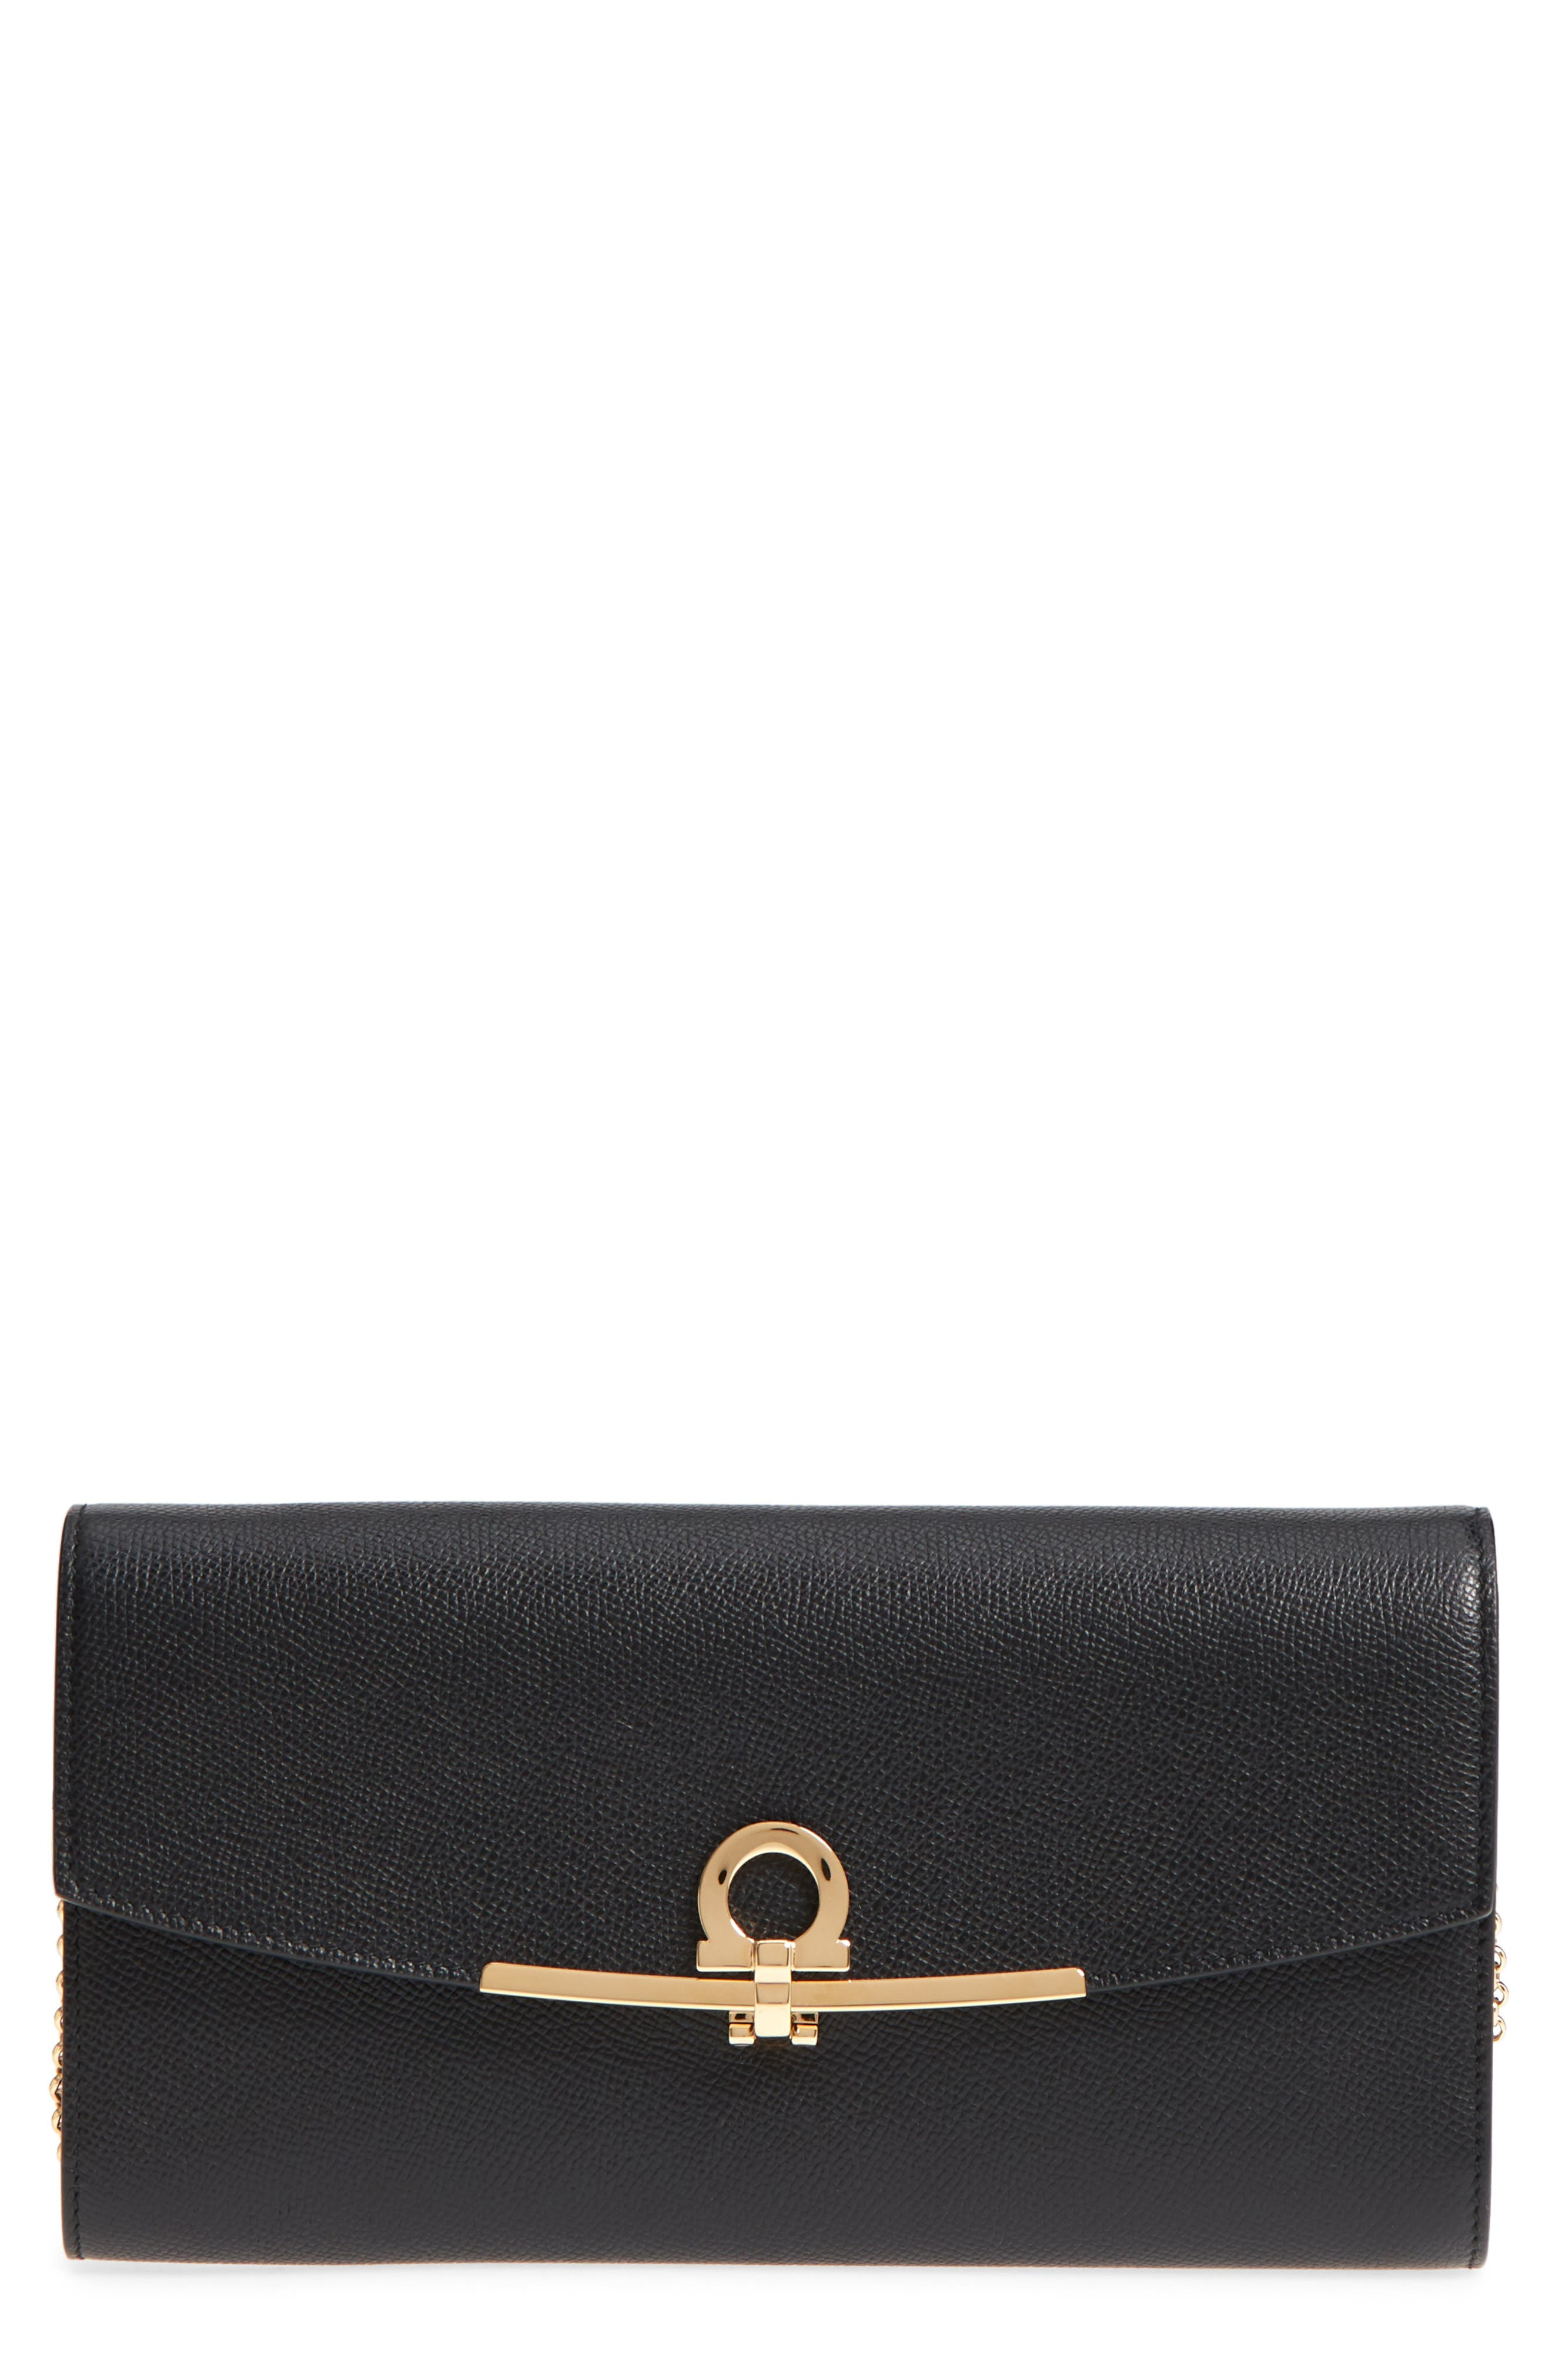 Gancio Calfskin Leather Wallet on a Chain,                             Main thumbnail 1, color,                             Nero